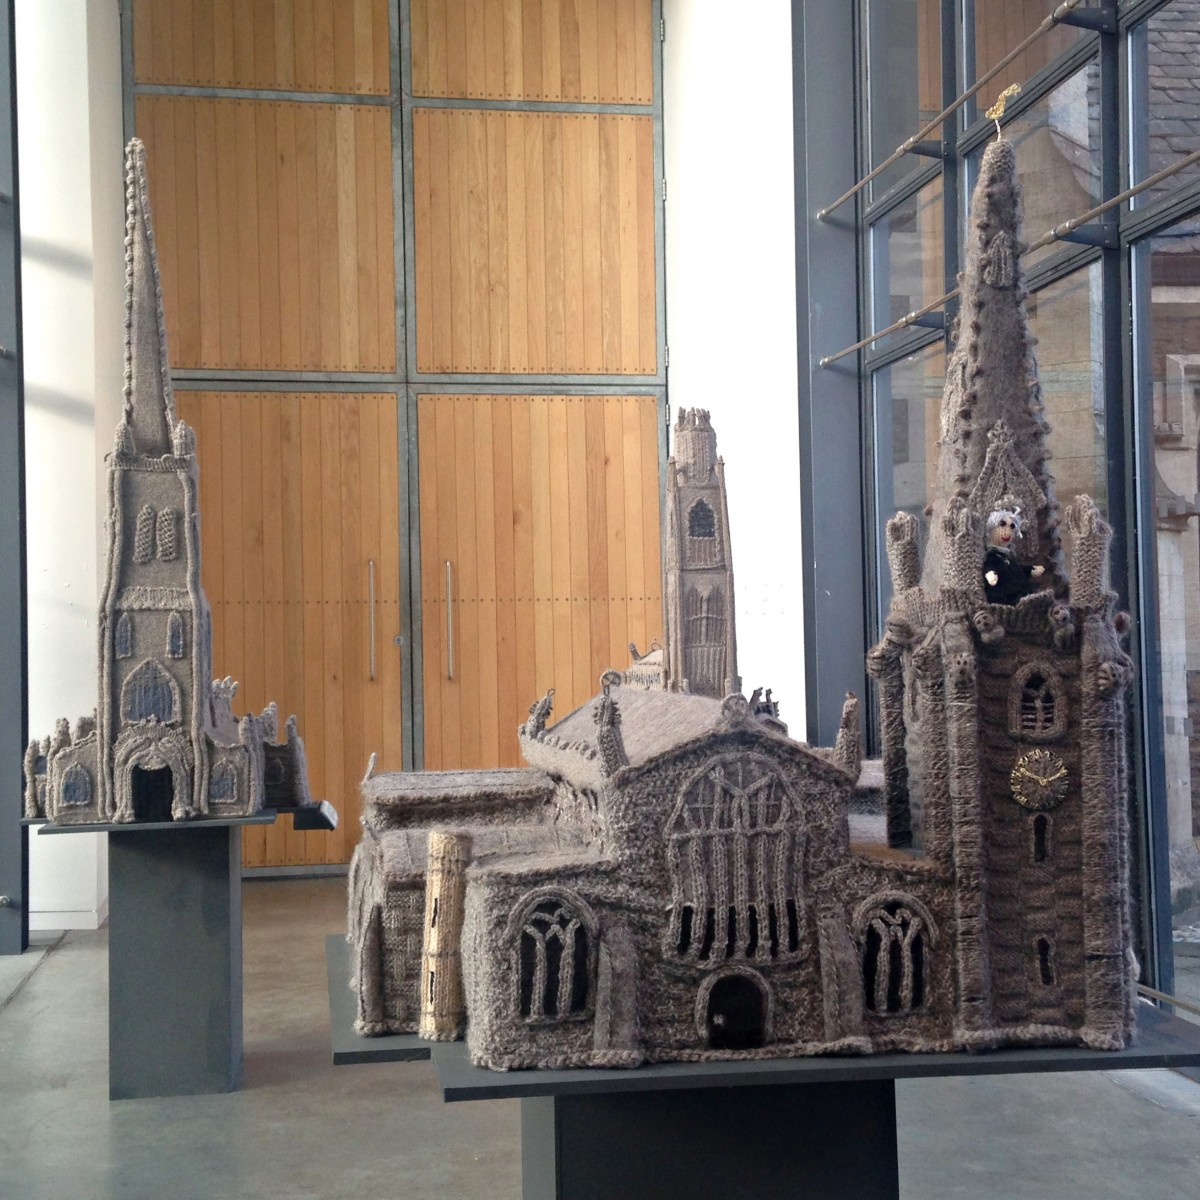 Woolly Spires at 20-21 Visual Arts Centre